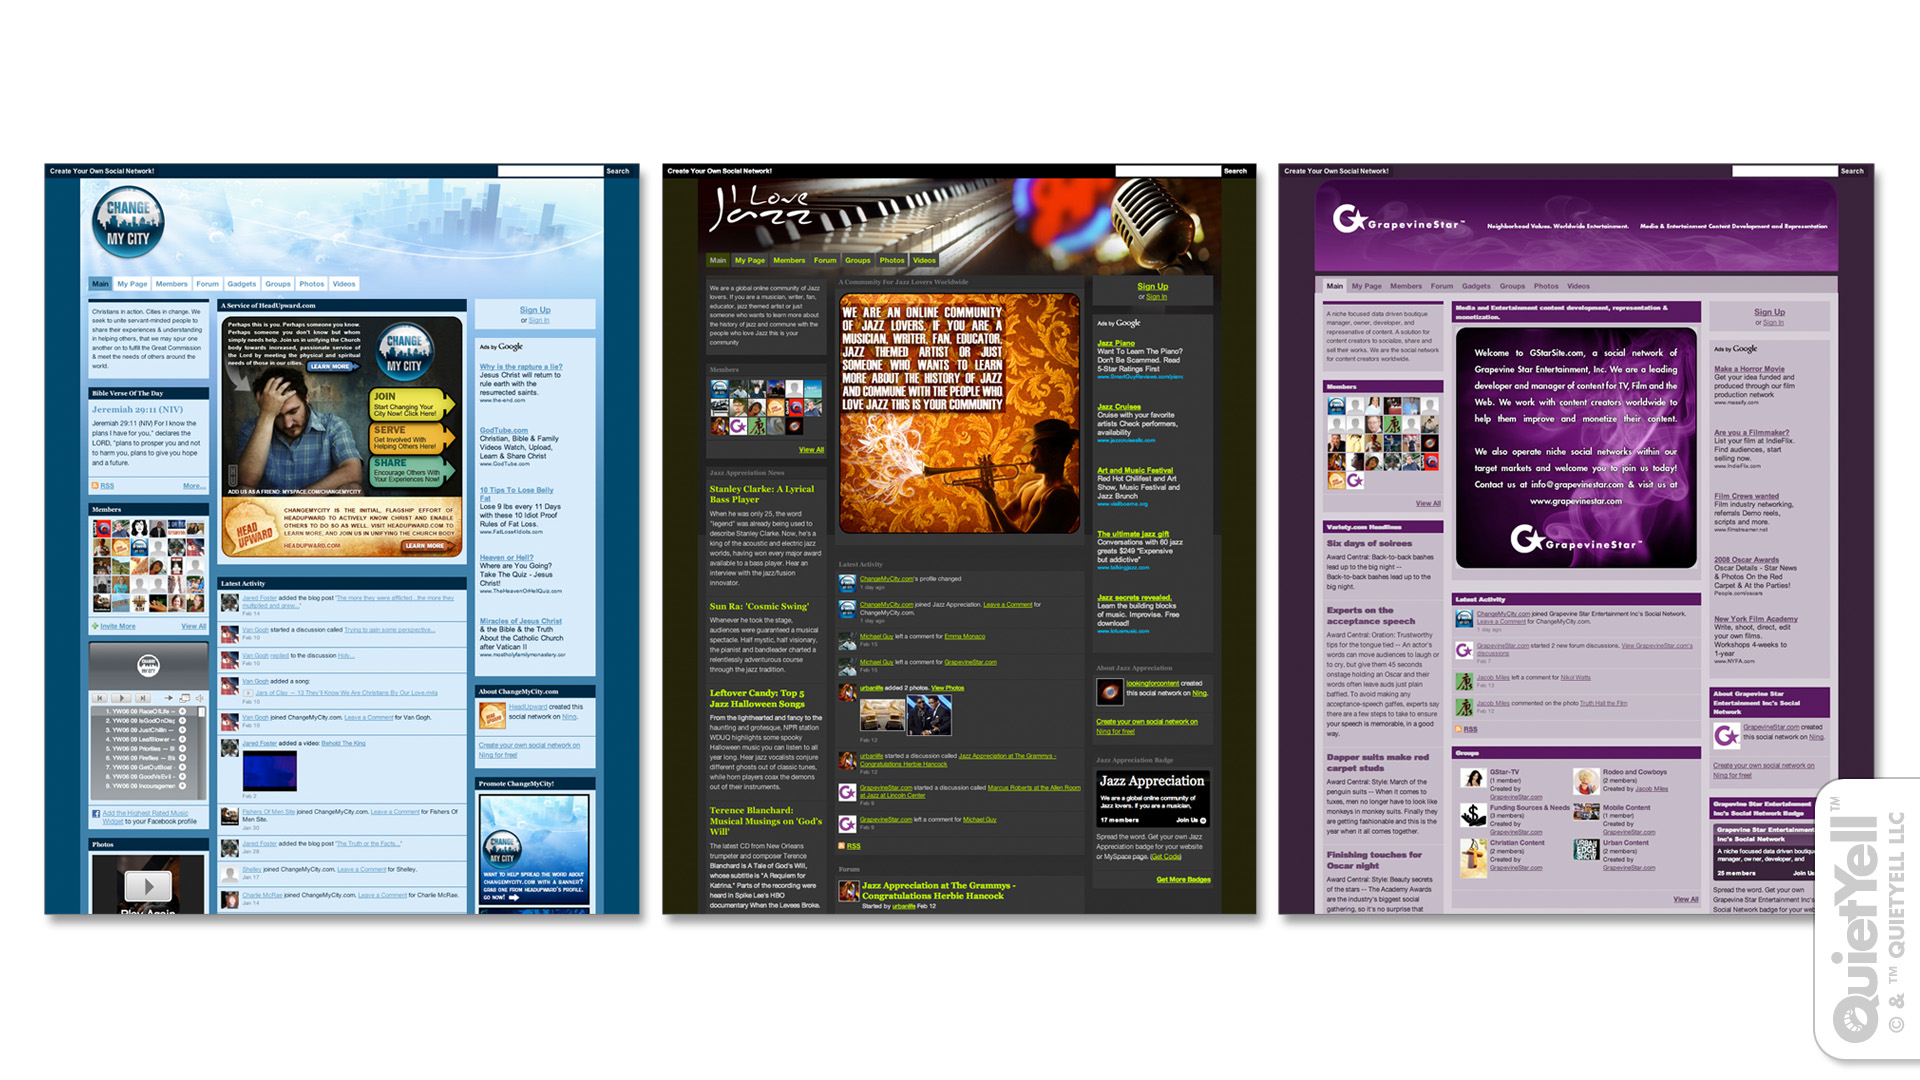 quietyell_interactive_details_ningsocialnetworks_01